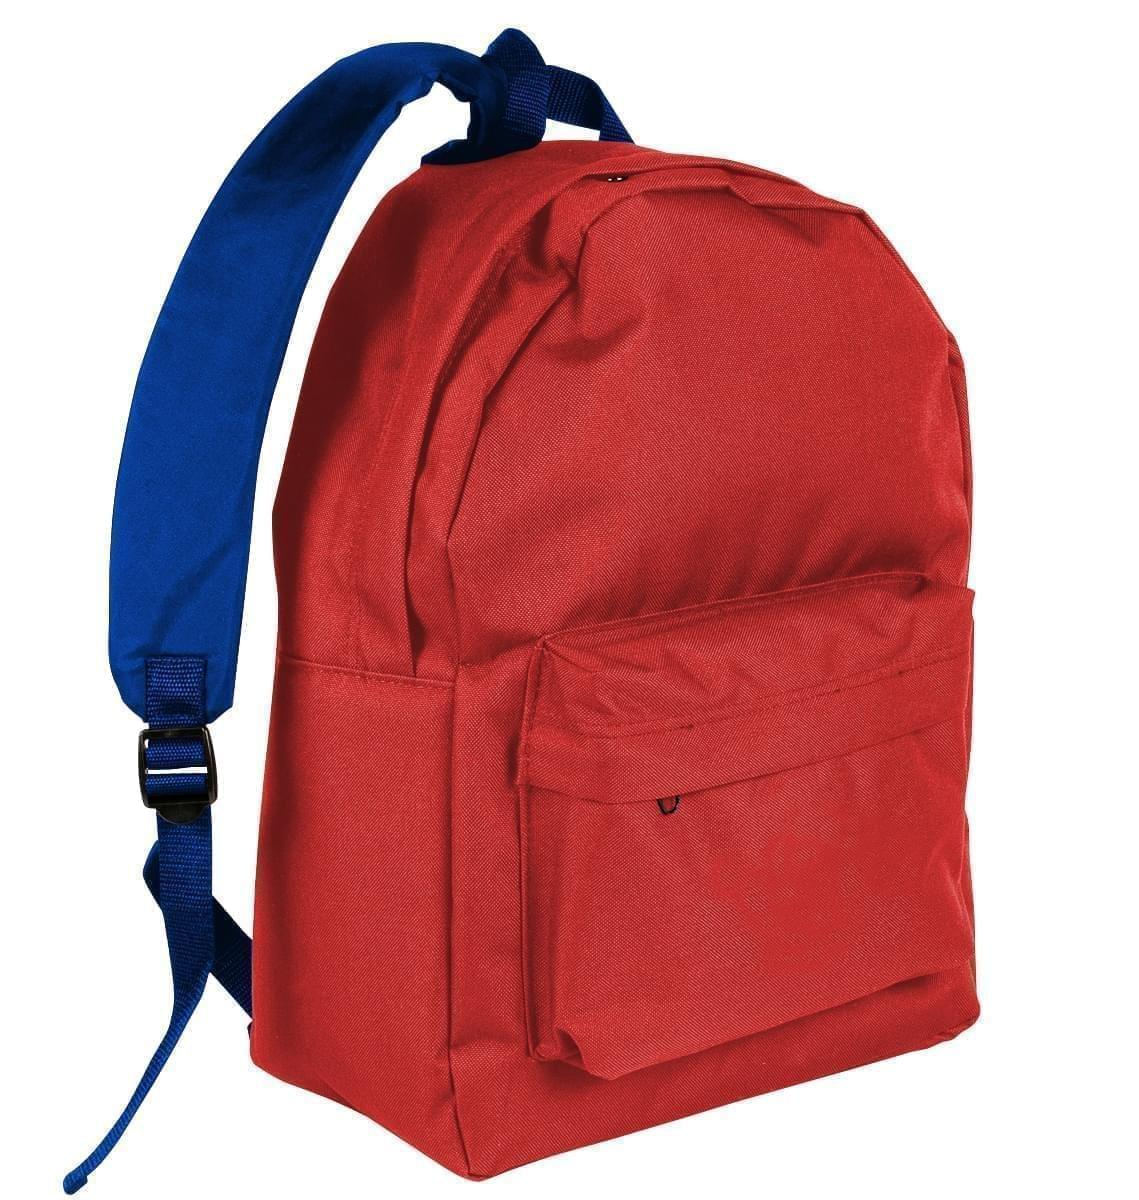 USA Made Nylon Poly Backpack Knapsacks, Red-Royal Blue, 8960-AZ3